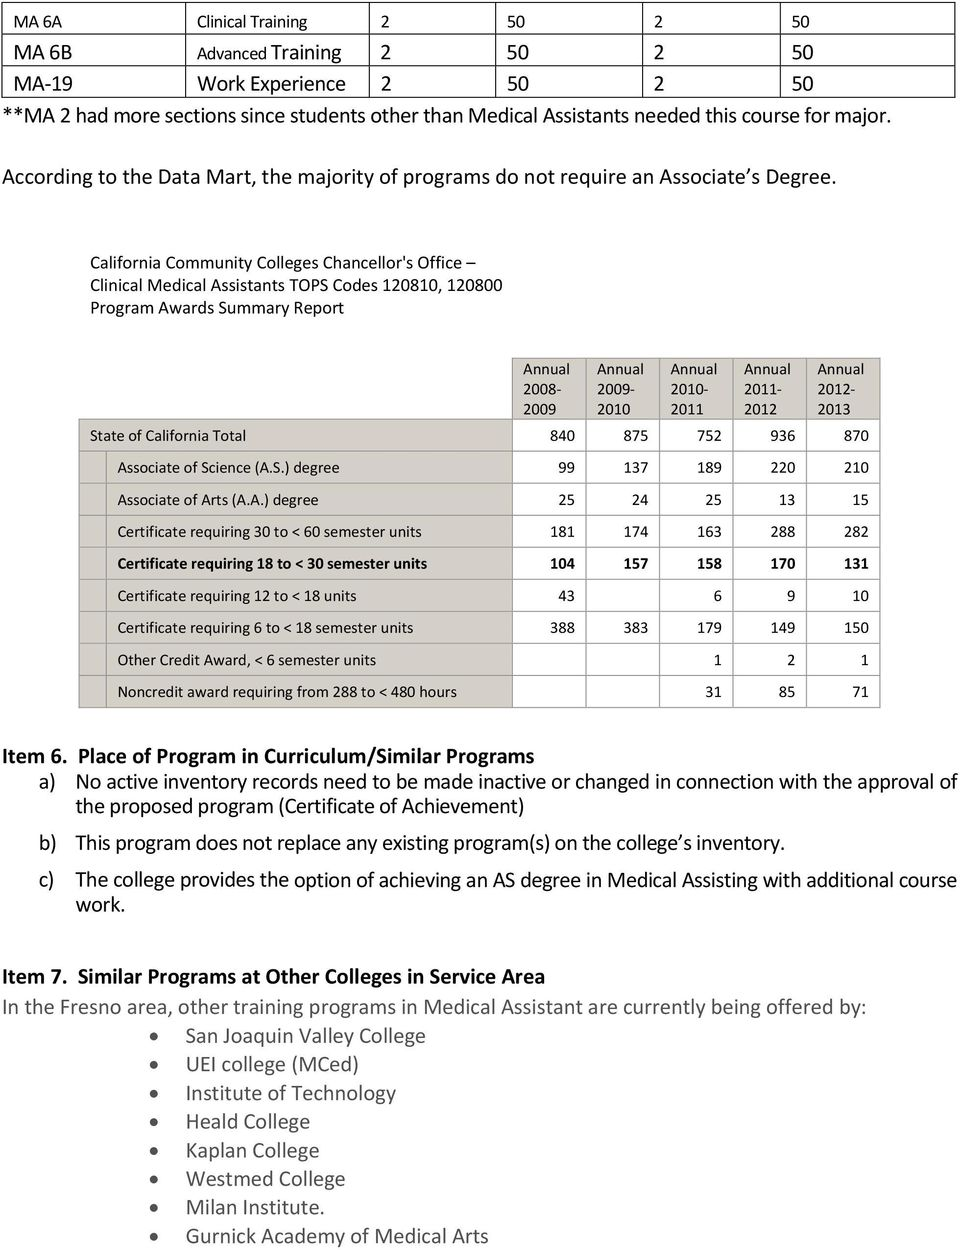 California Community Colleges Chancellor's Office Clinical Medical Assistants TOPS Codes 120810, 120800 Program Awards Summary Report 2008 2009 2009 2010 2010 2011 2011 2012 2012 2013 State of